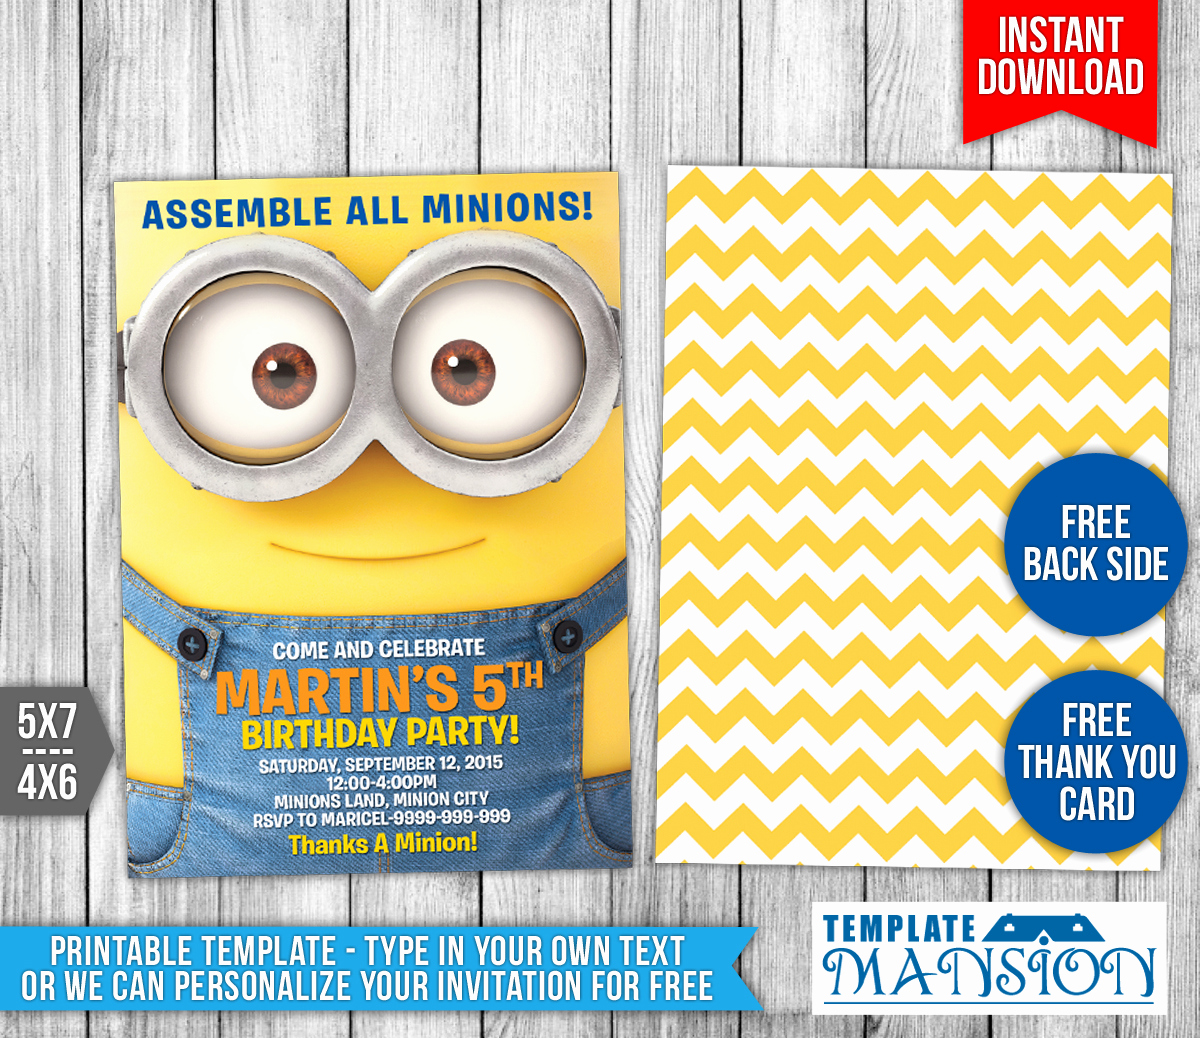 Free Minion Invitation Template Fresh Minions Birthday Invitation 3 by Templatemansion On